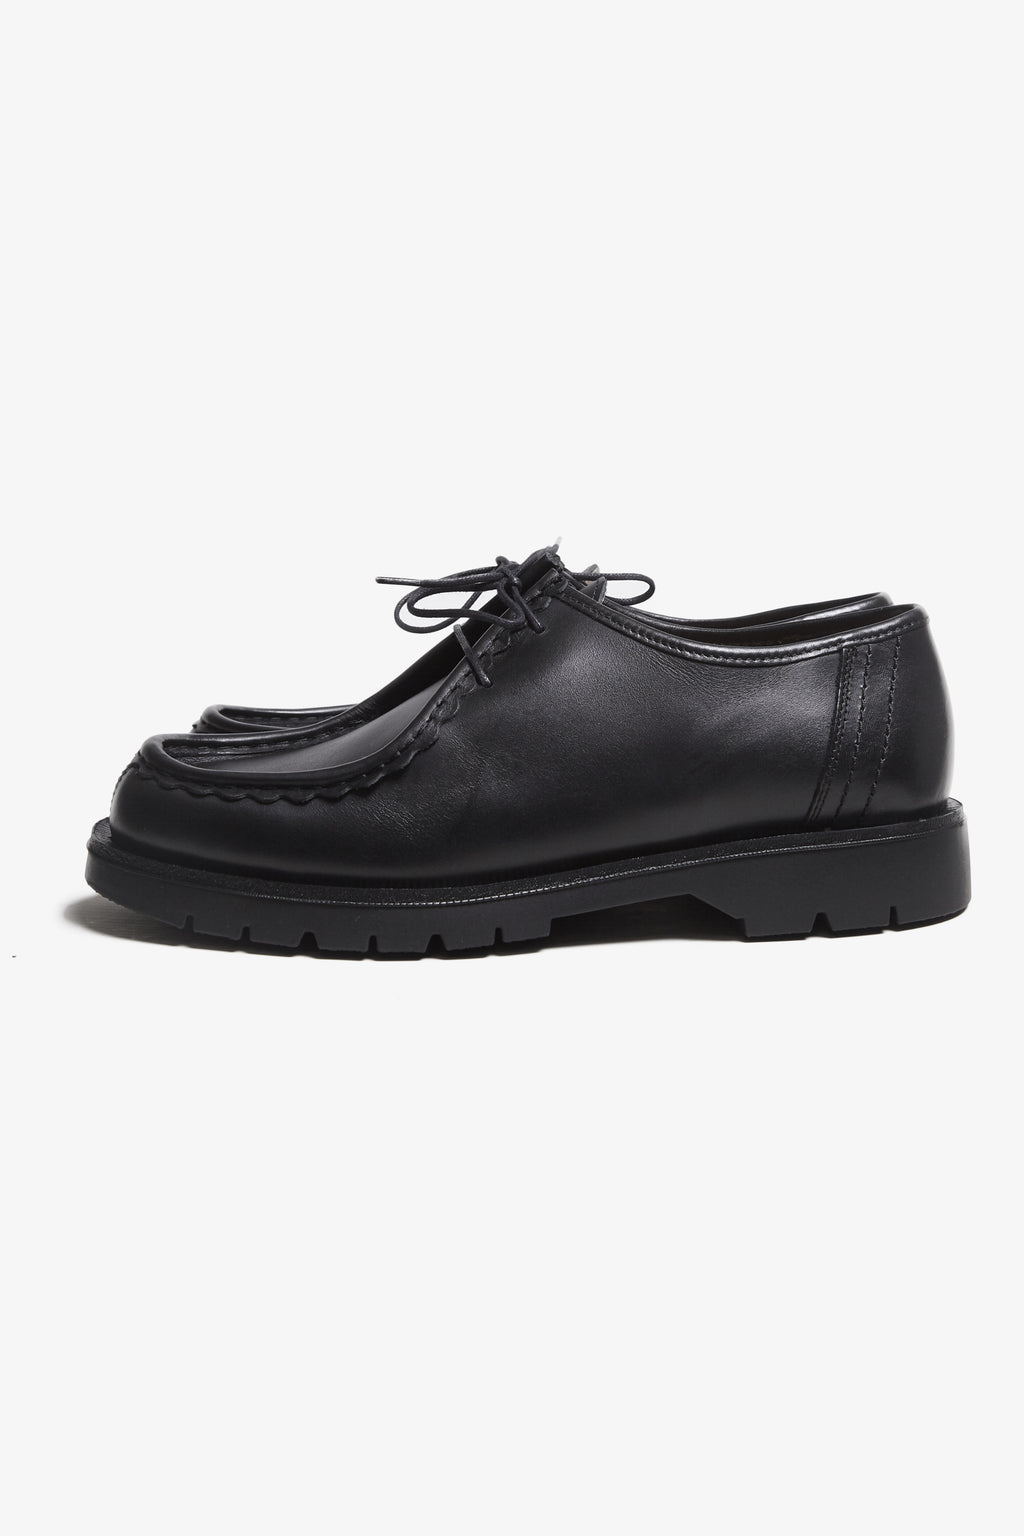 Kleman - Padror Moc Toe Shoe - Black